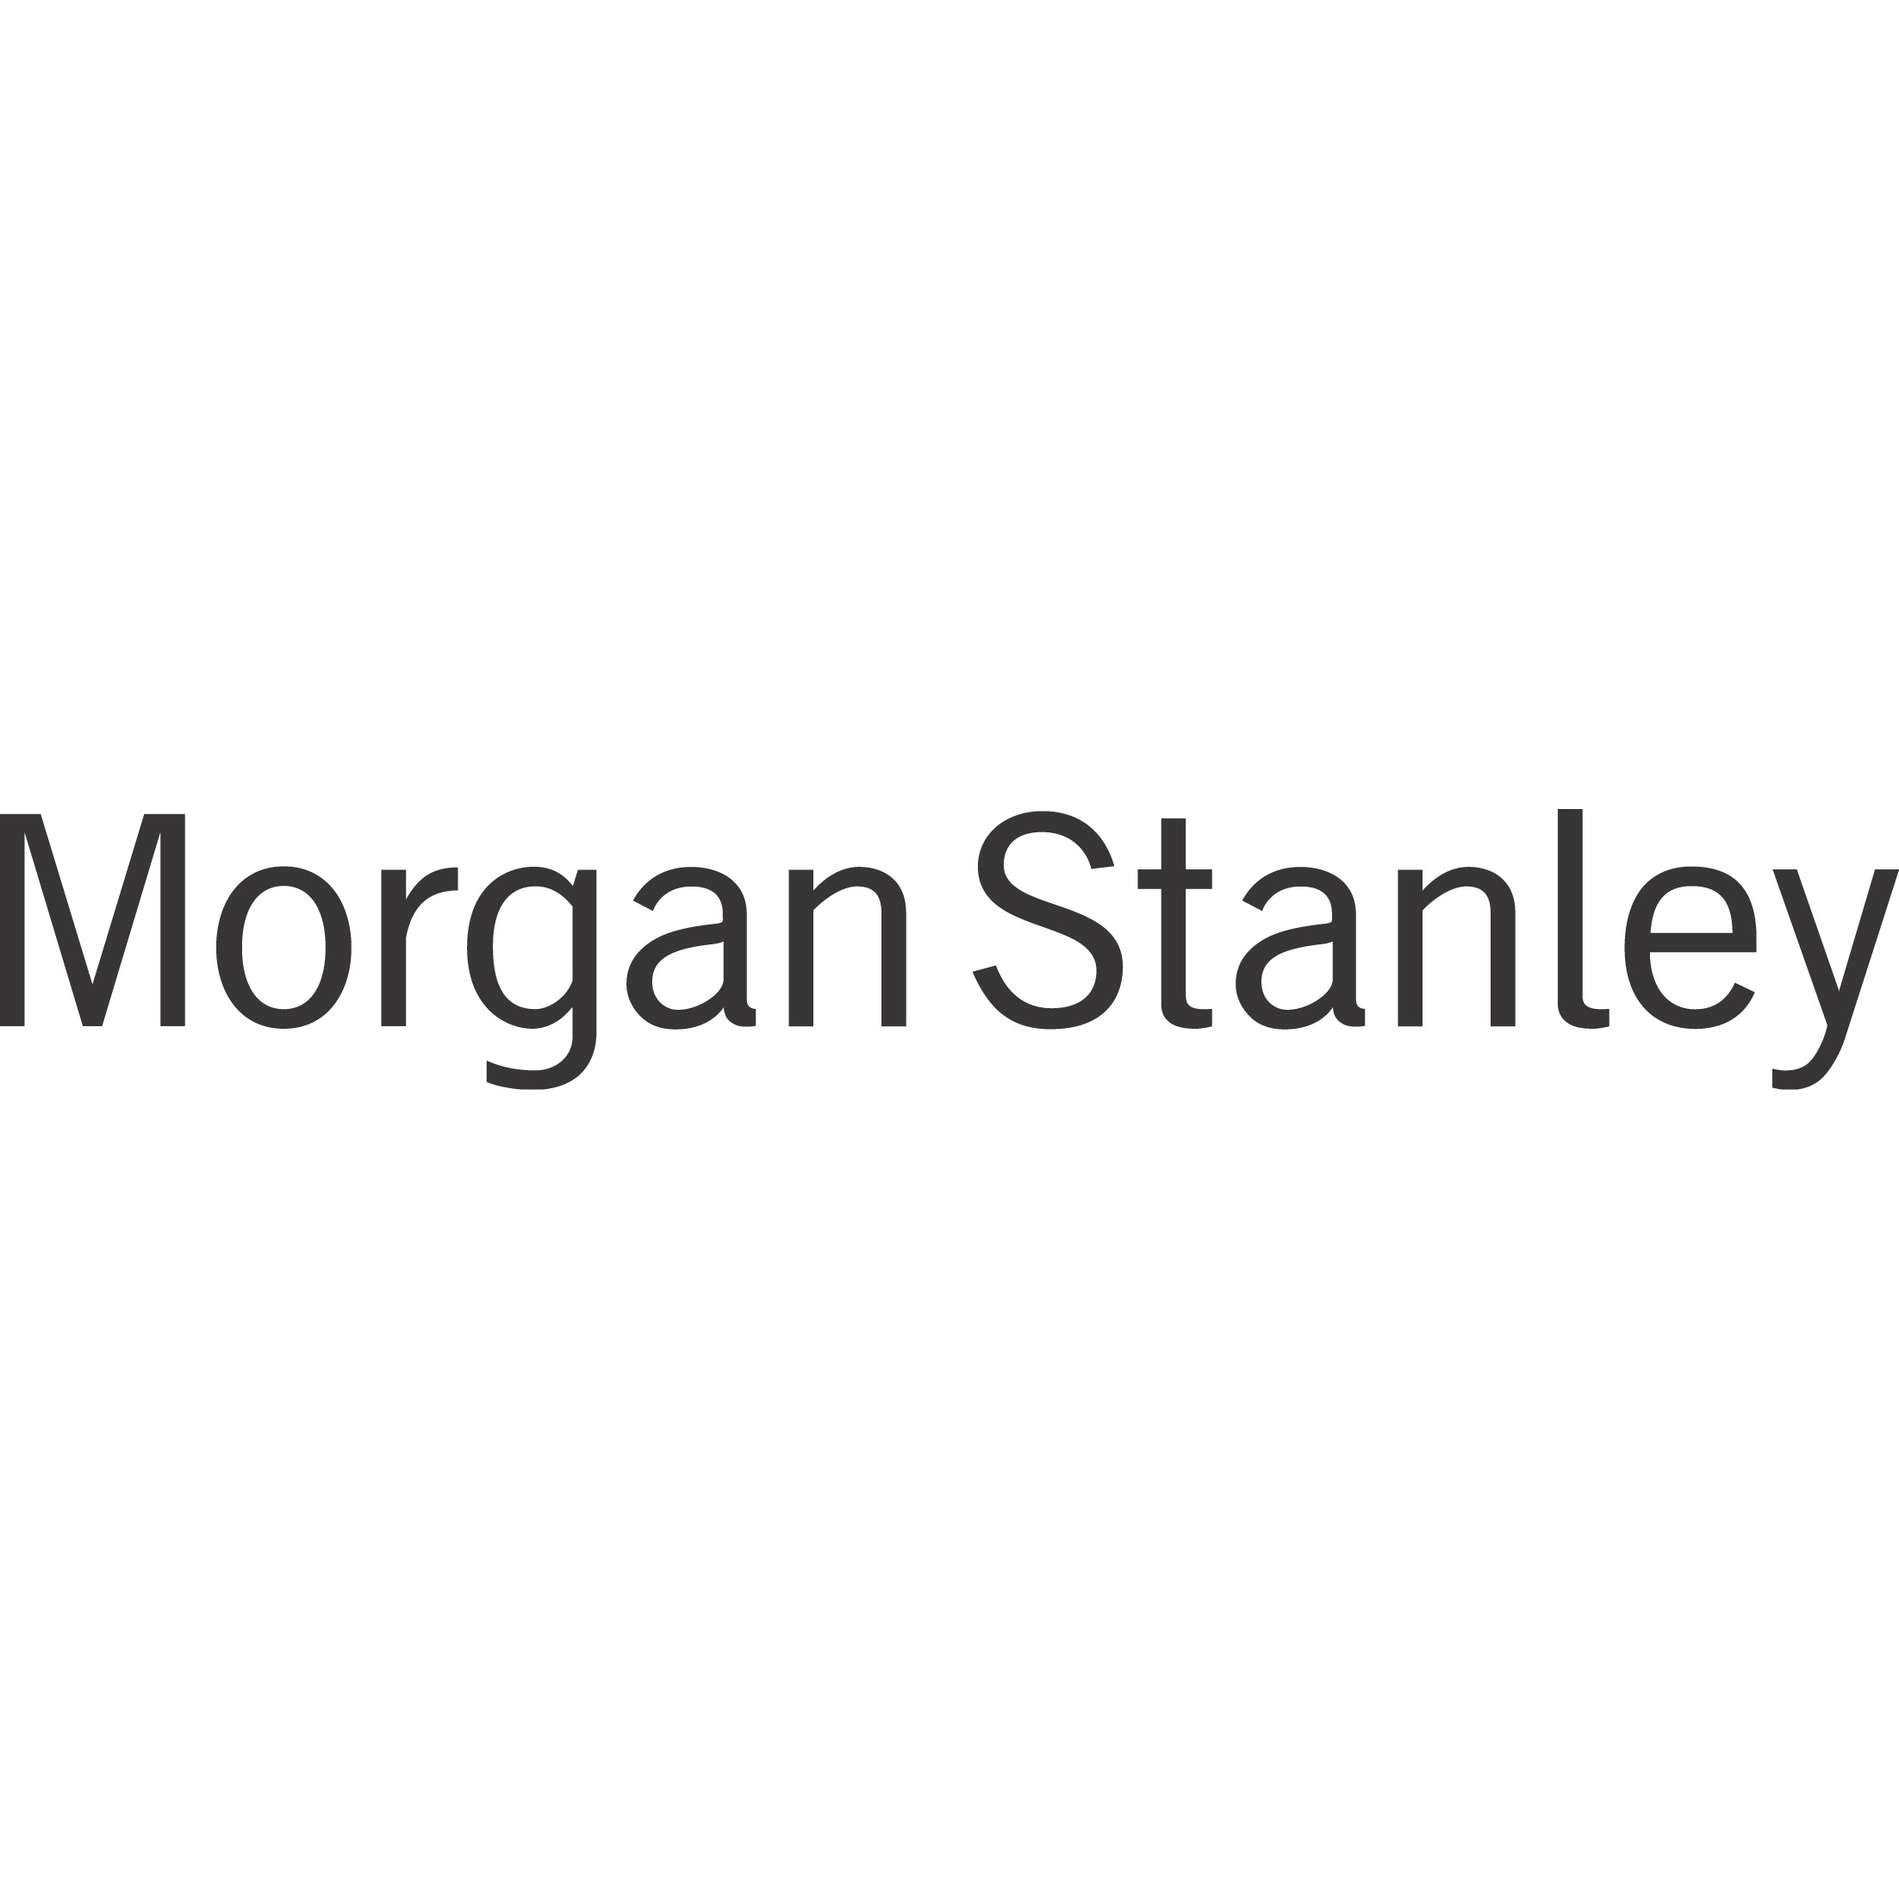 Barbara J Finder - Morgan Stanley